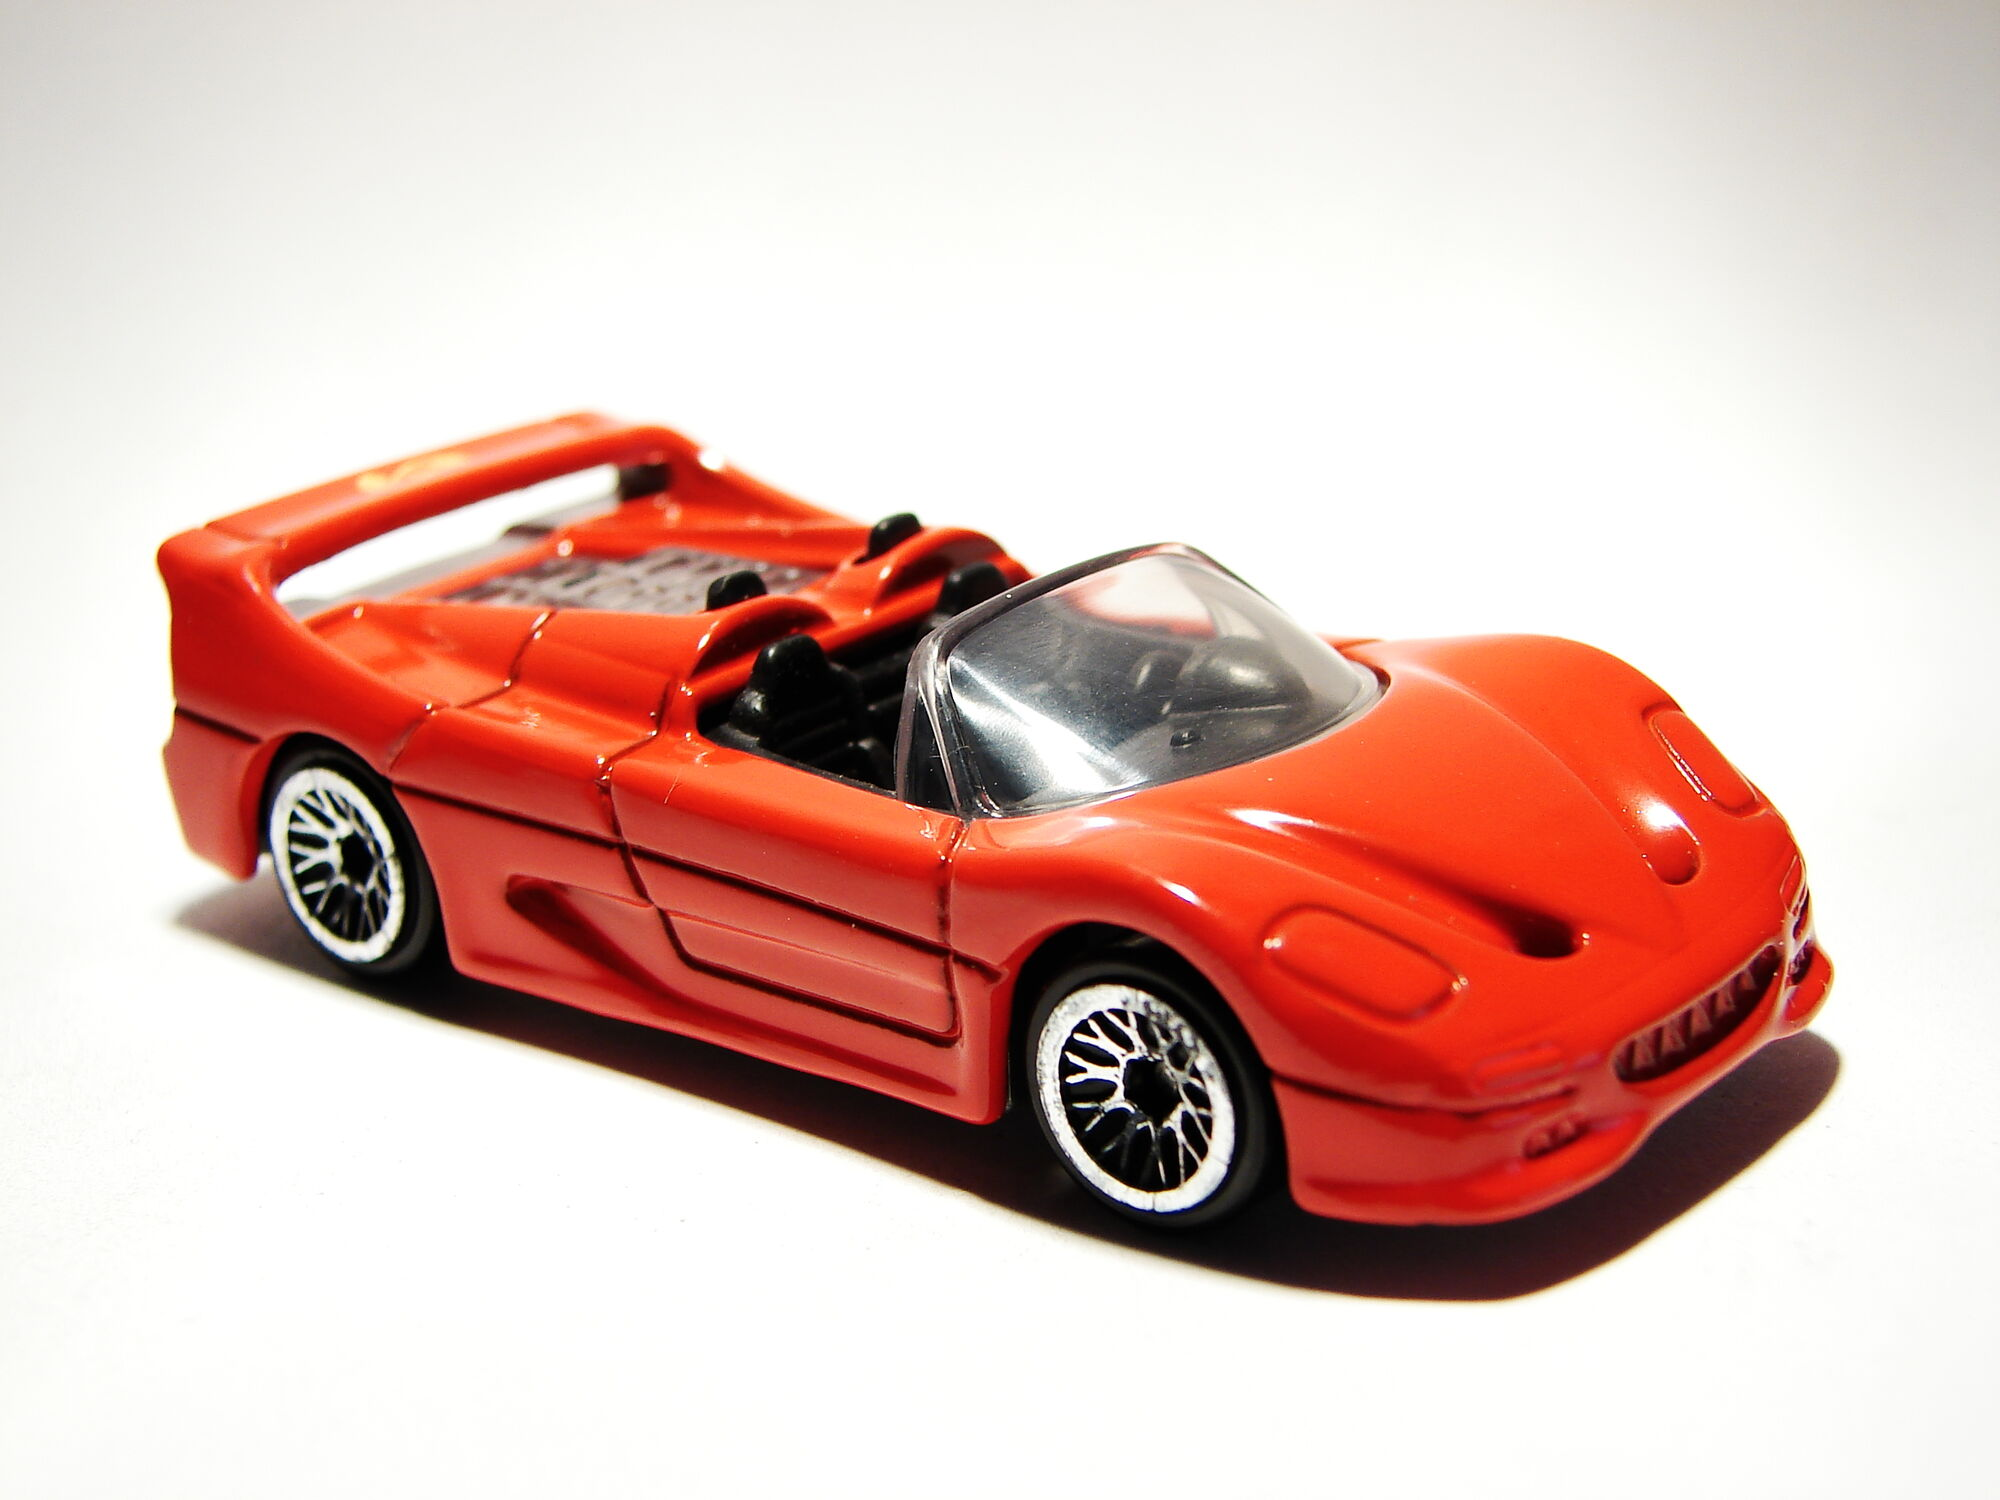 ferrari f50 spider hot wheels wiki fandom powered by wikia. Black Bedroom Furniture Sets. Home Design Ideas